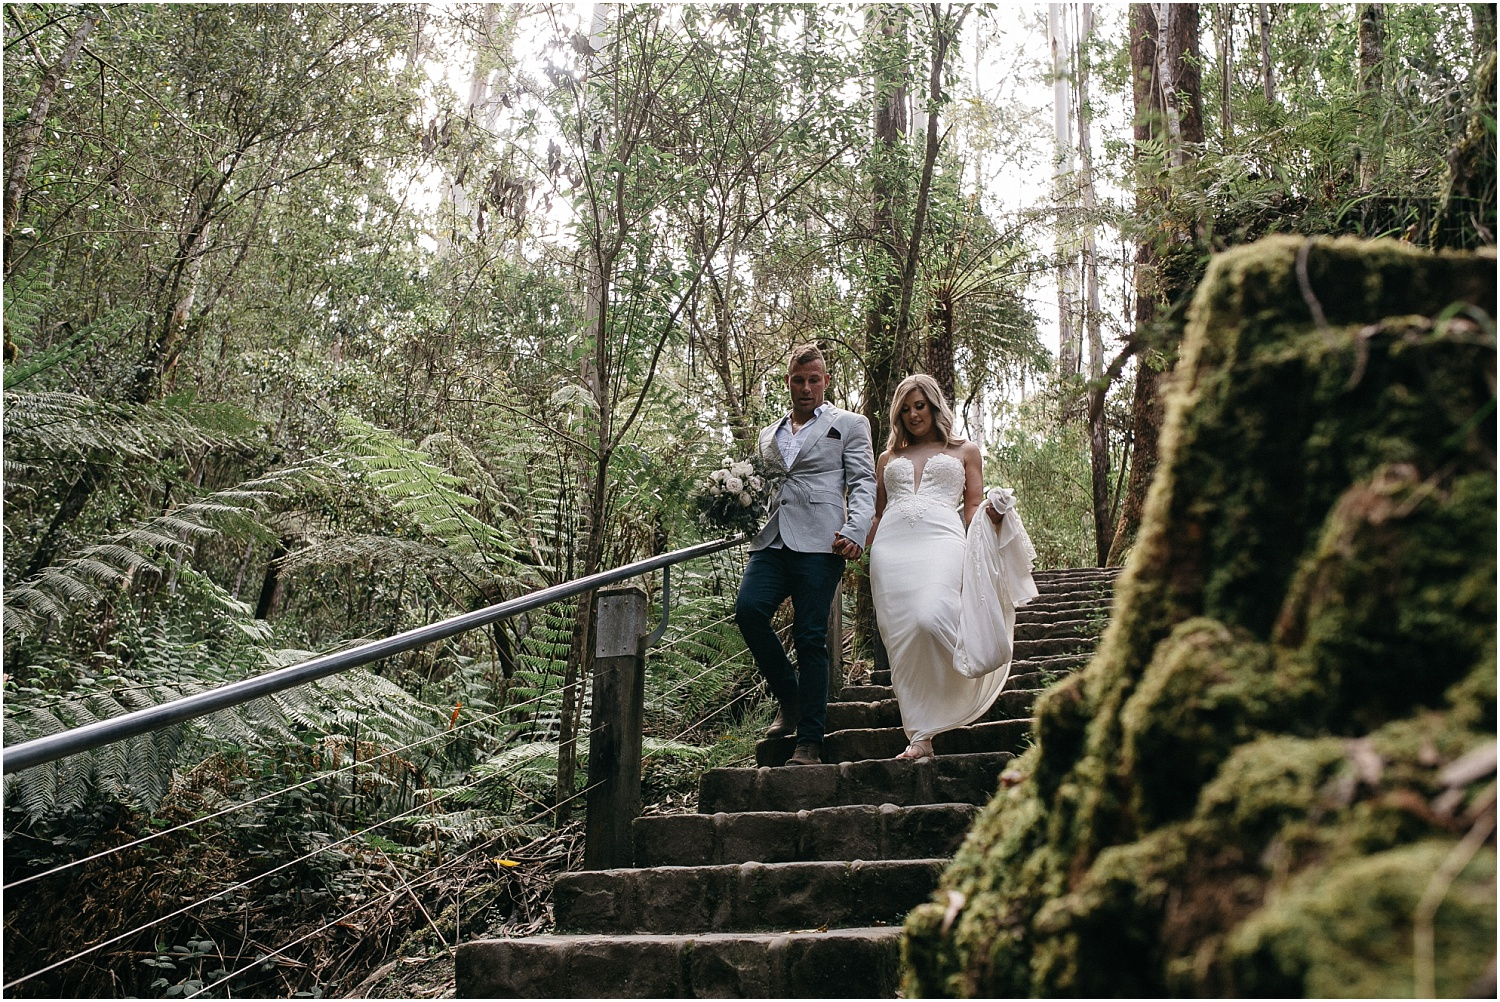 Renee and Ash's real elopement in Lorne on the Great Ocean Roadwith the ceremony at erskin falls._0064.jpg